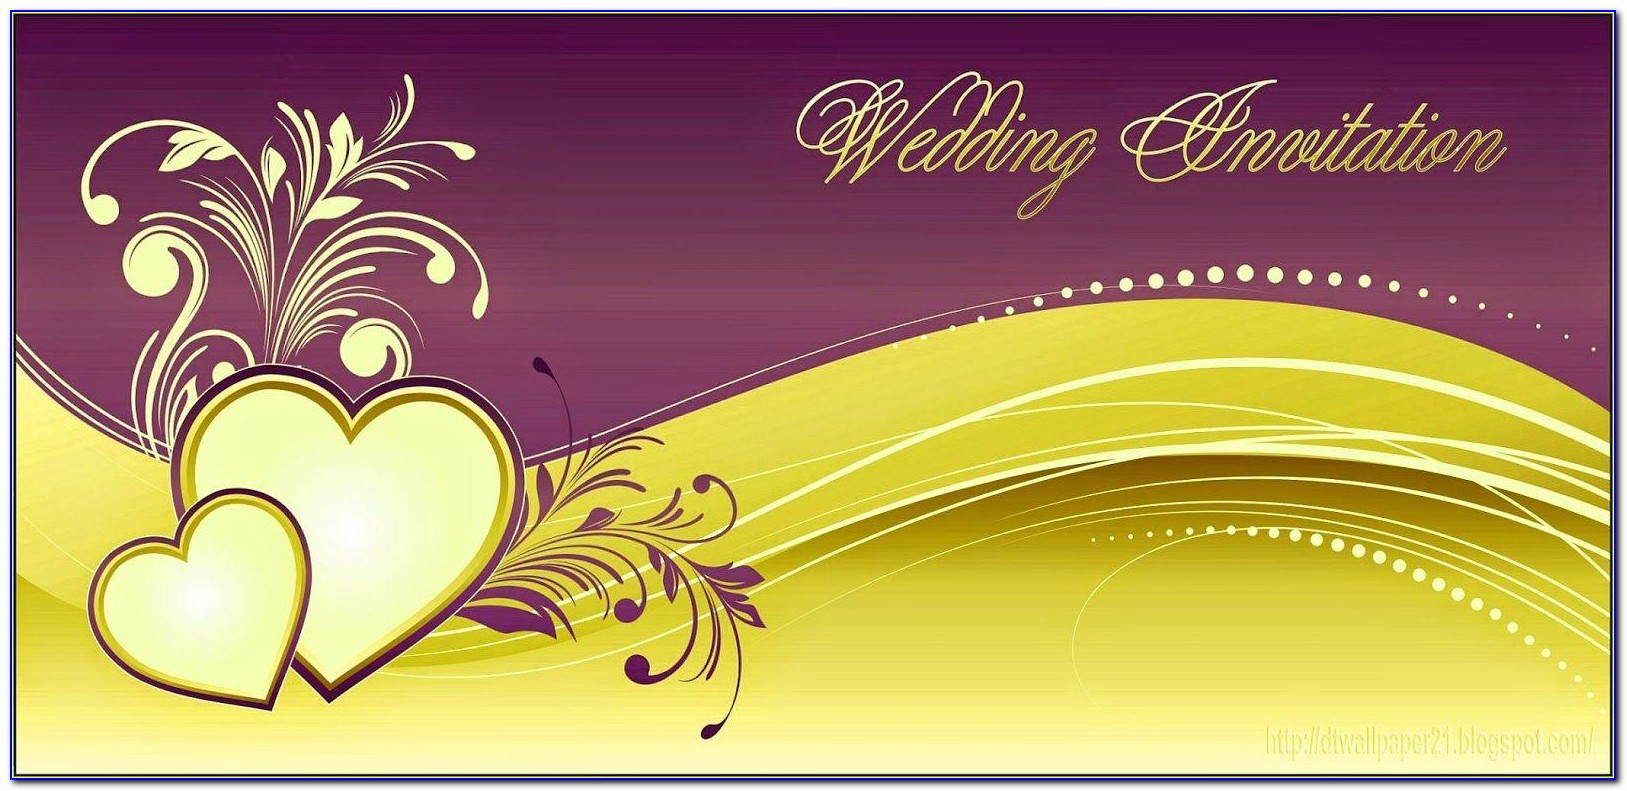 Invitation Card Background Png